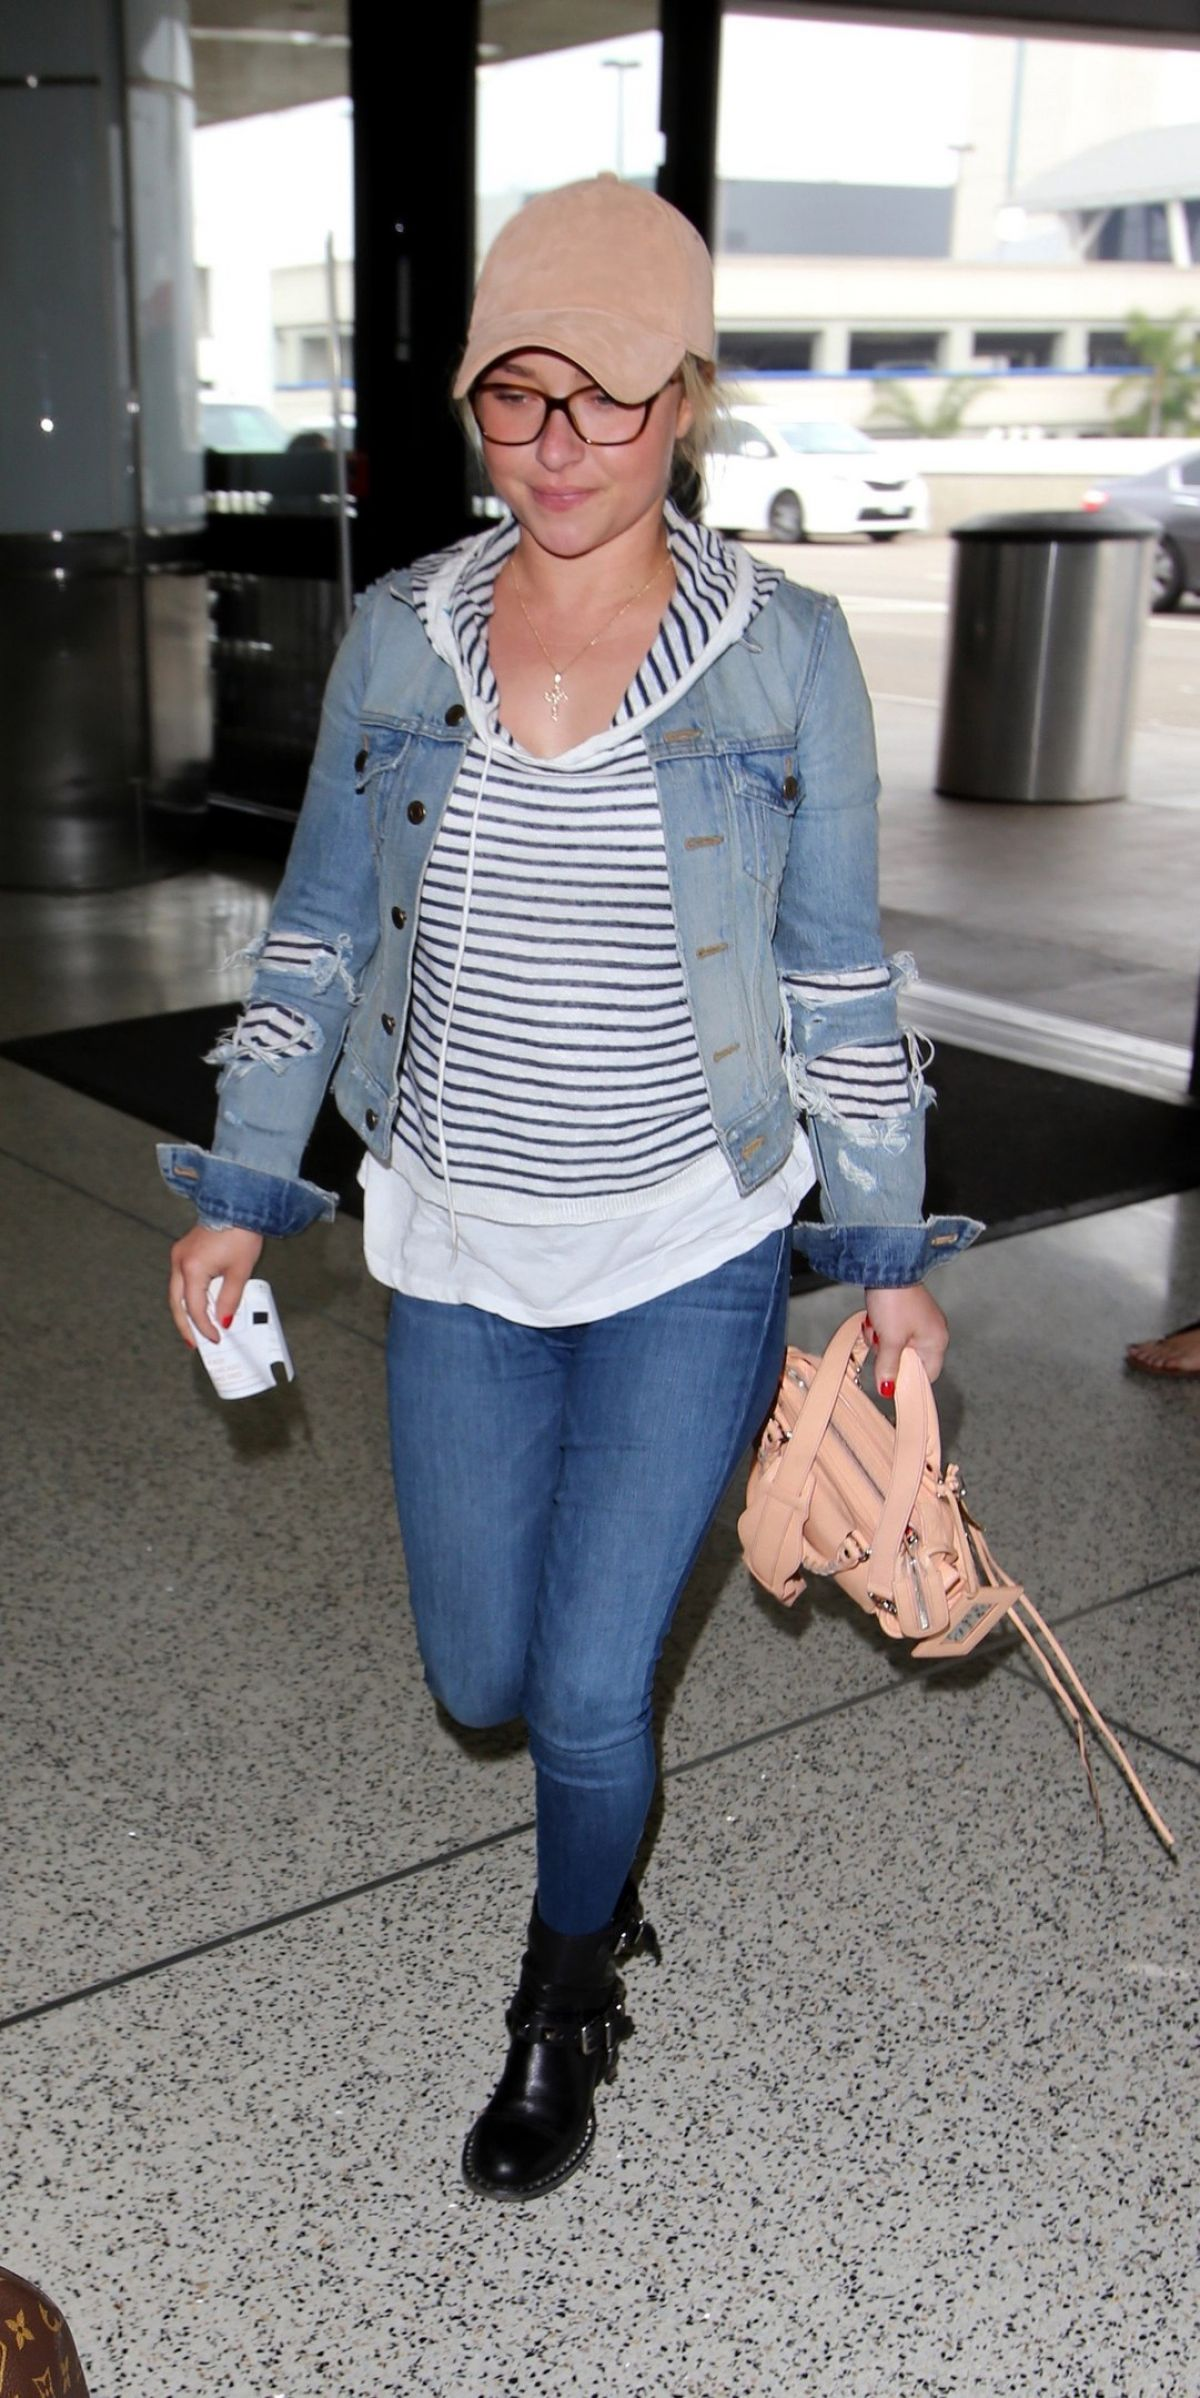 HAYDEN PANETTIERE at Los Angeles International Airport 04/06/2017